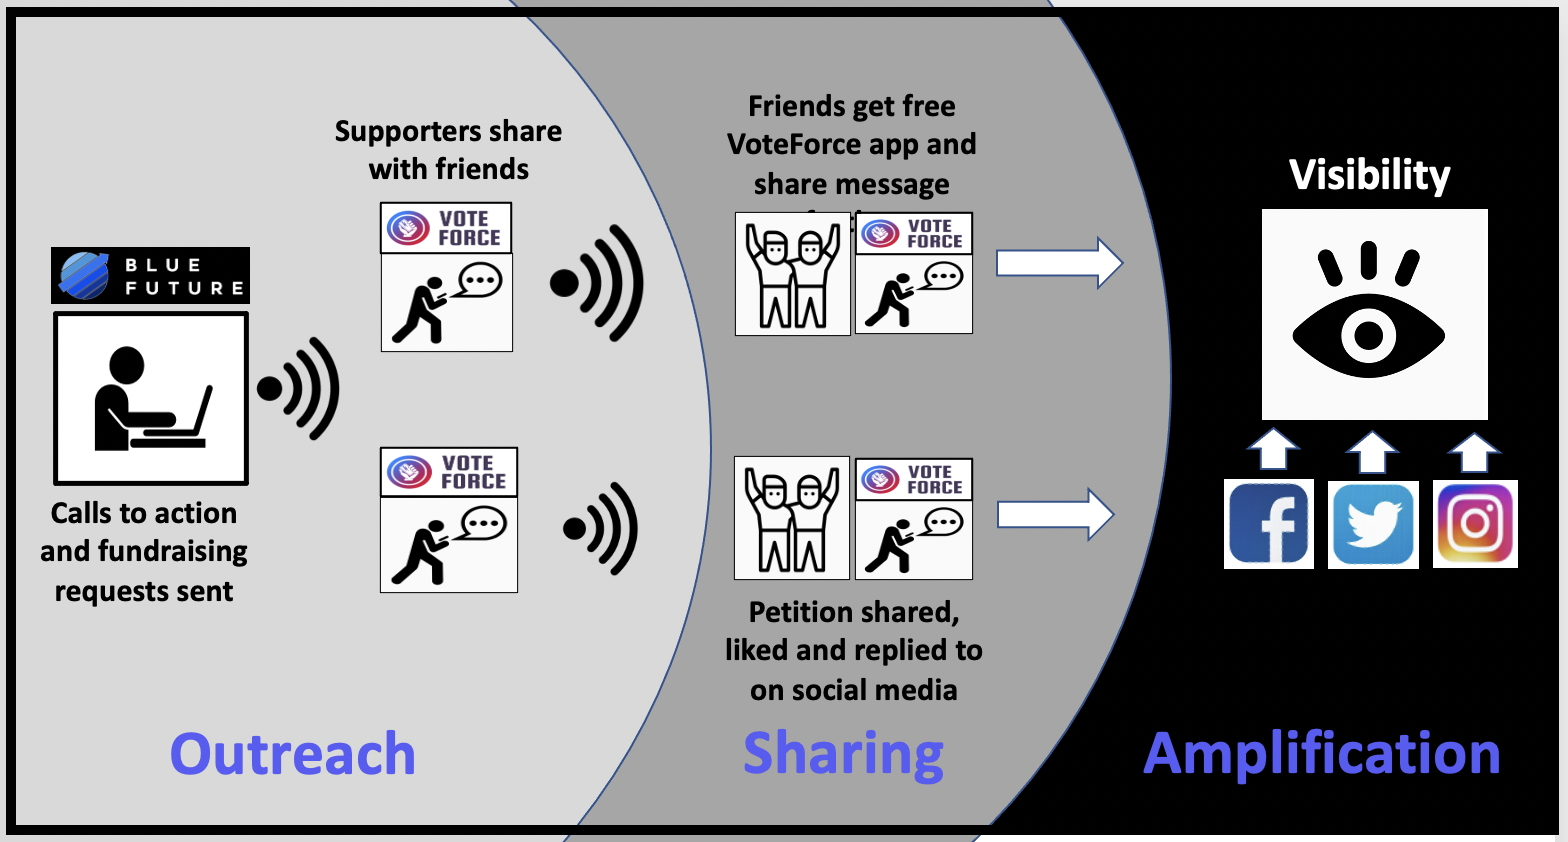 Blue Future uses relational organizing with Vote Force to spread its message across Facebook, Twitter and WhatsApp